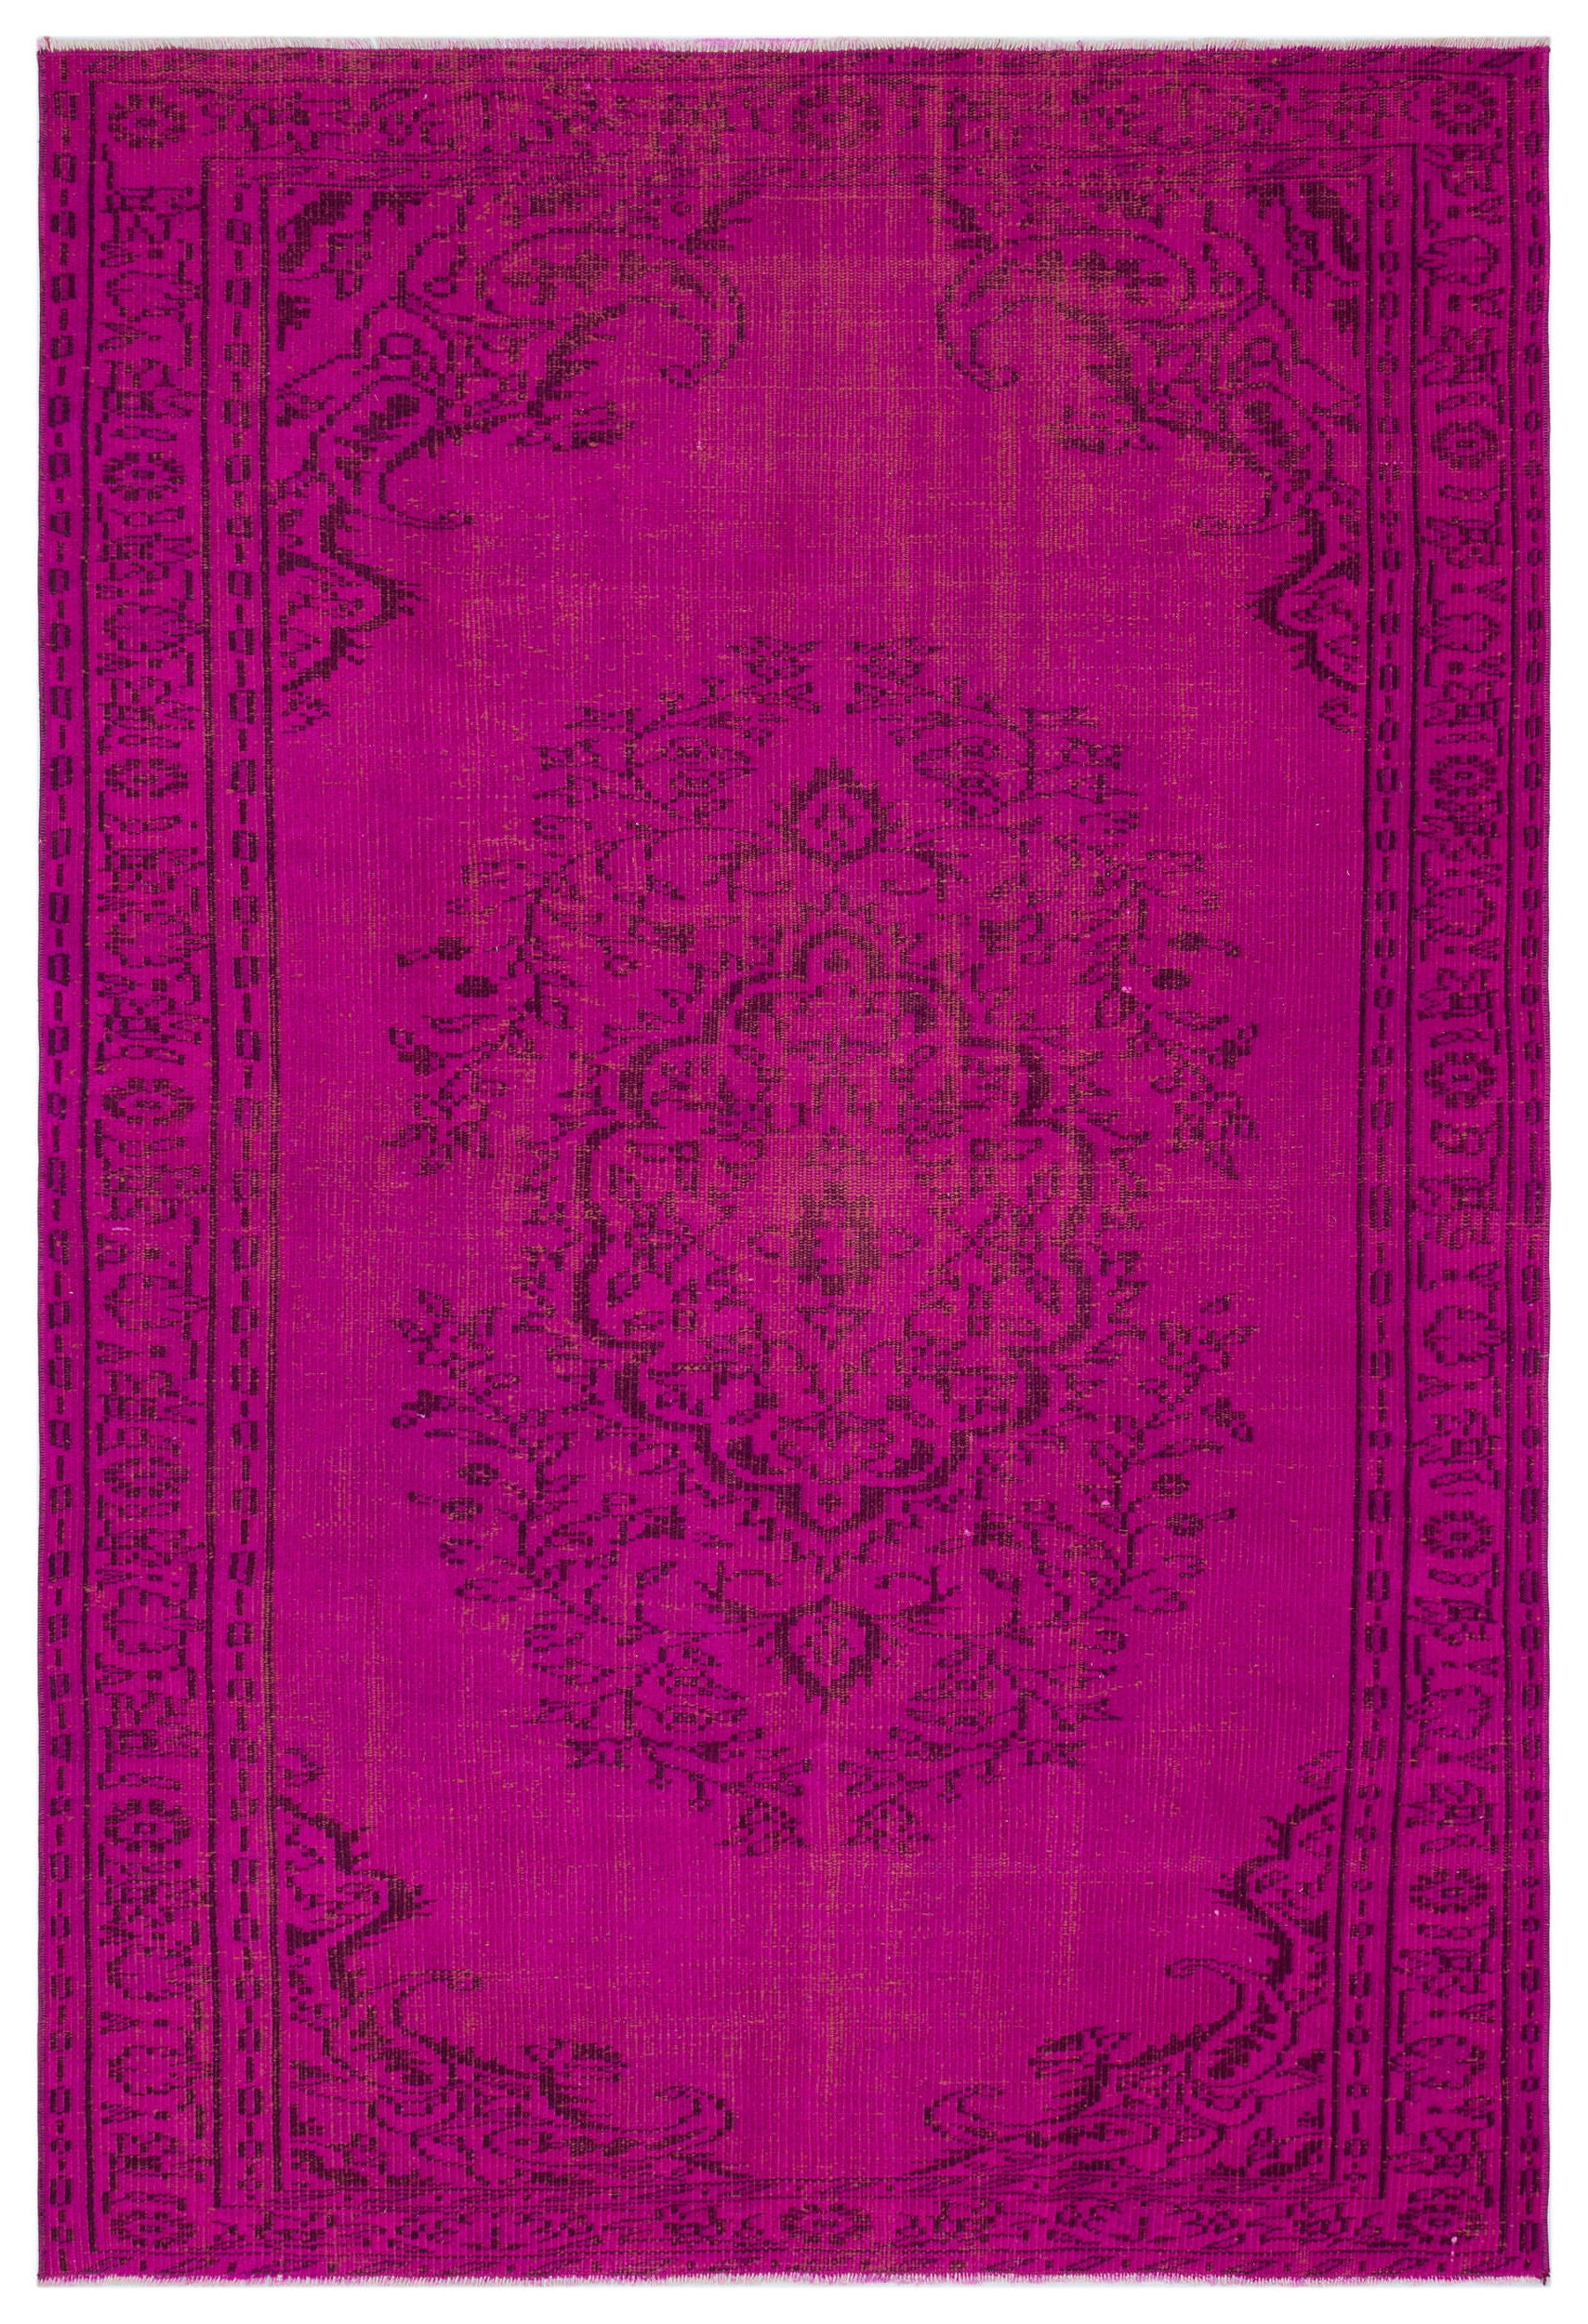 Fuchsia Over Dyed Vintage Rug 5'4'' x 8'0'' ft 163 x 245 cm